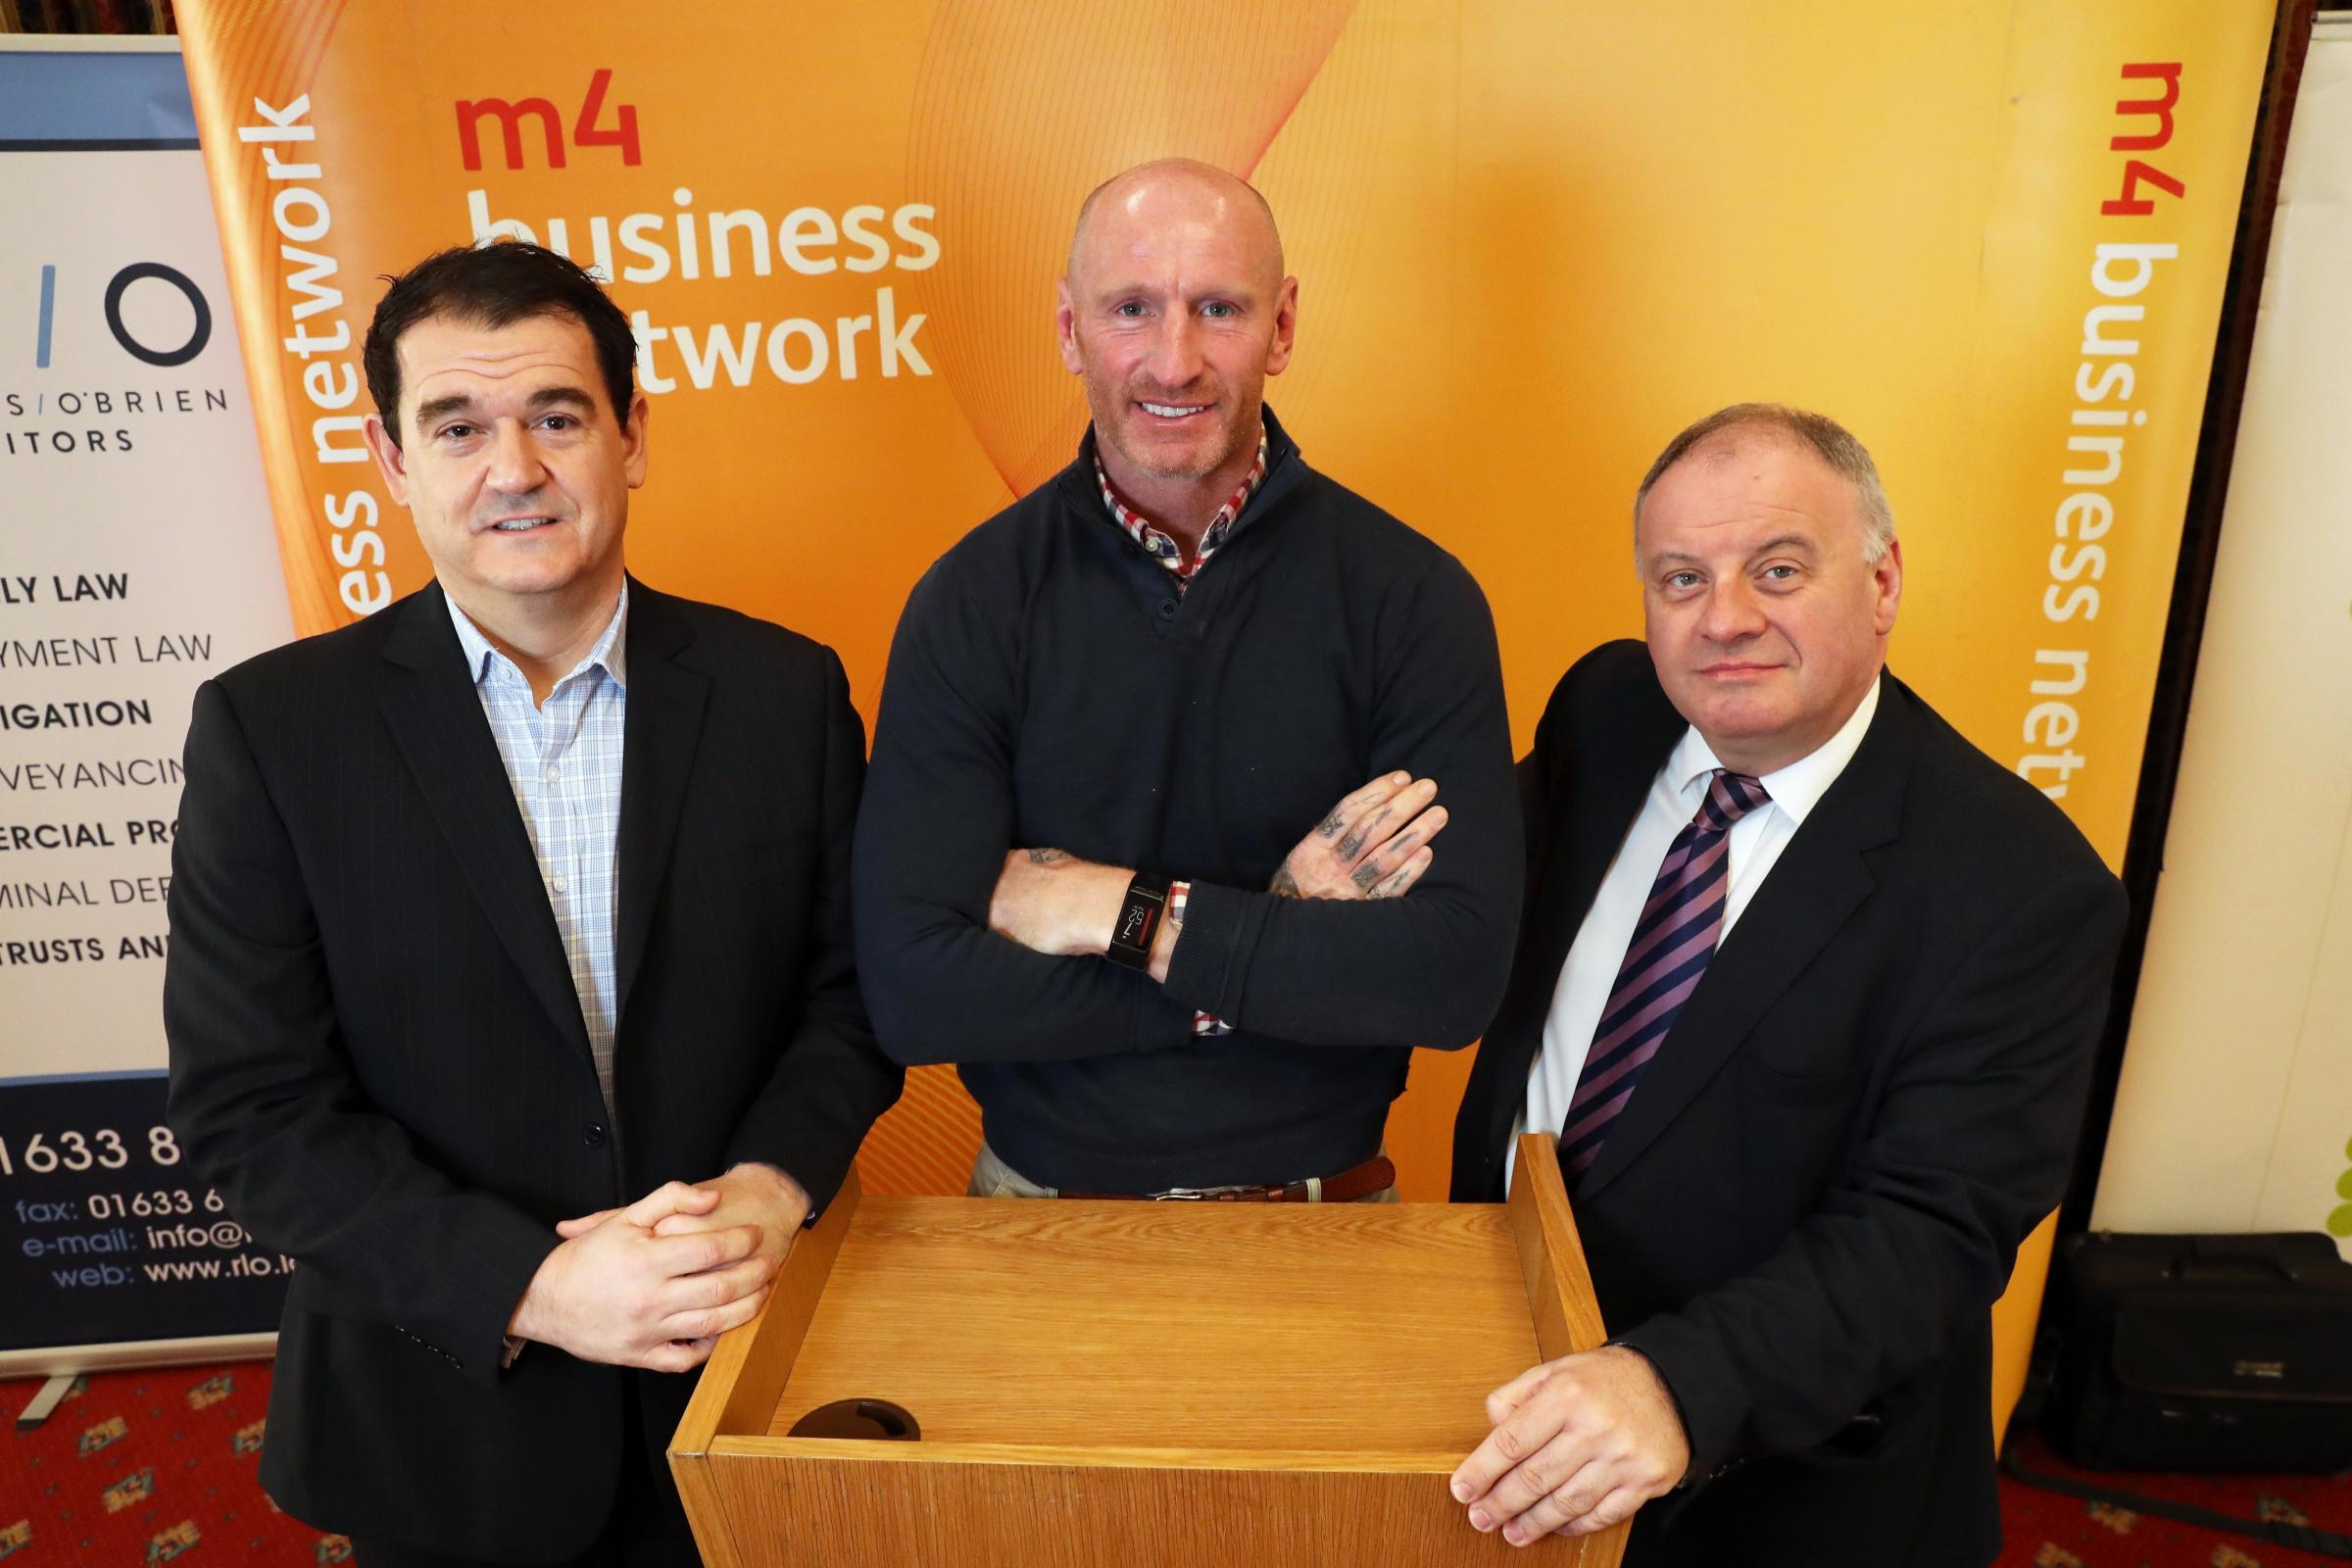 Alfie shares his inspirational story with the M4 Business Network